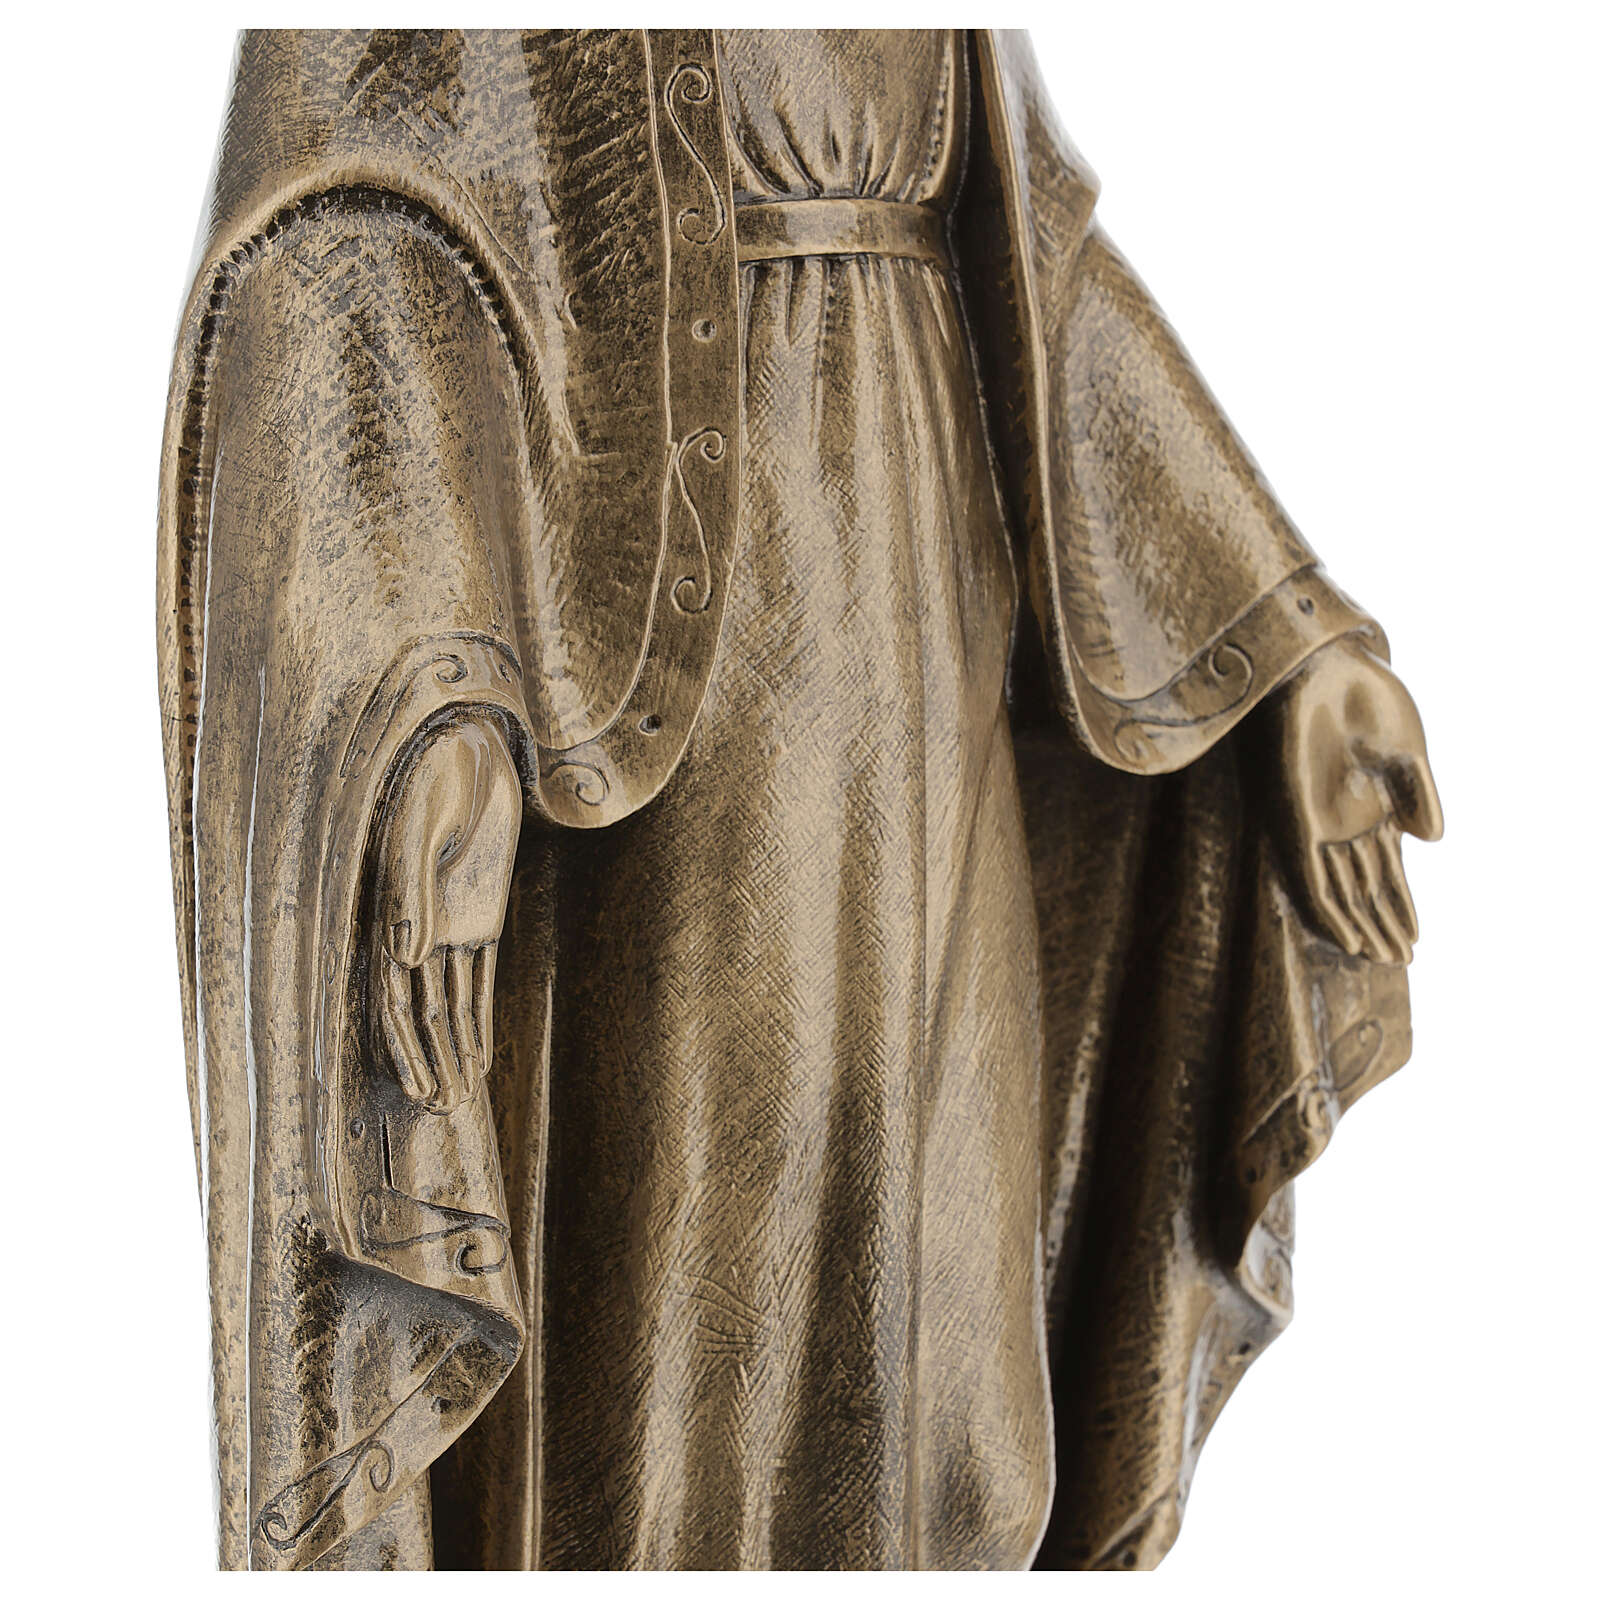 Miraculous Medal statue in bronzed marble powder composite 62 cm, OUTDOOR 4